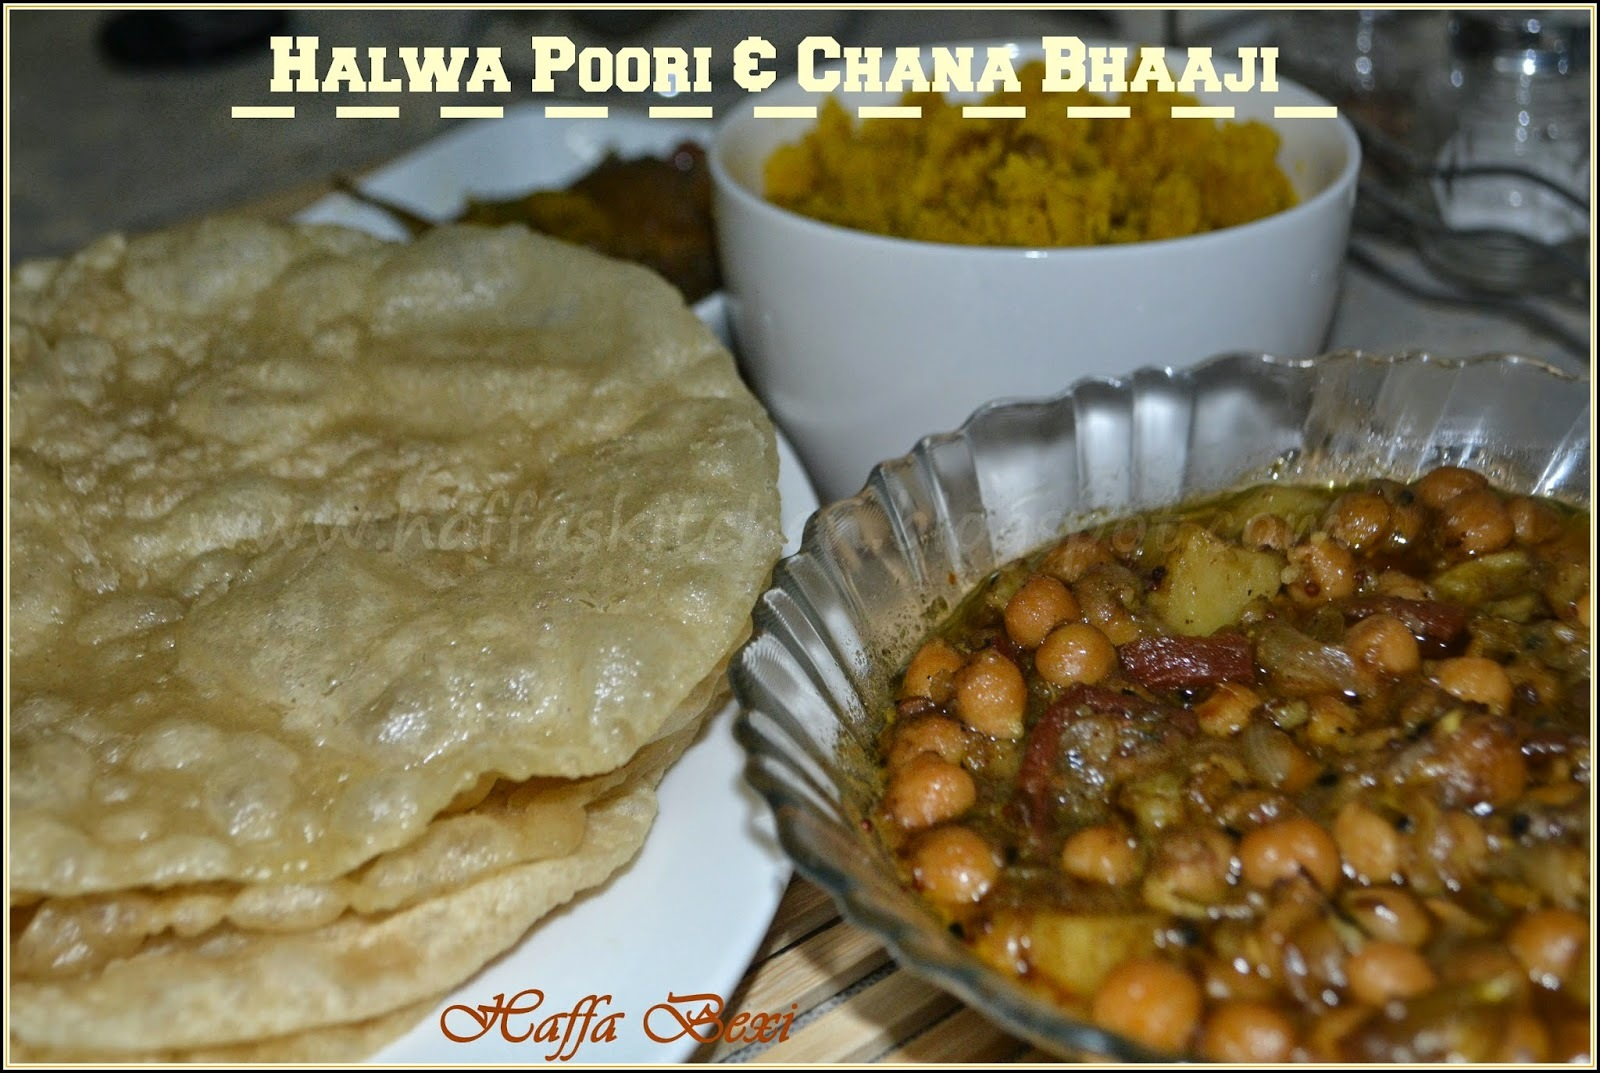 Halwa Poori & Chanay Bhaaji| Traditional Pakistani- Indian Breakfast